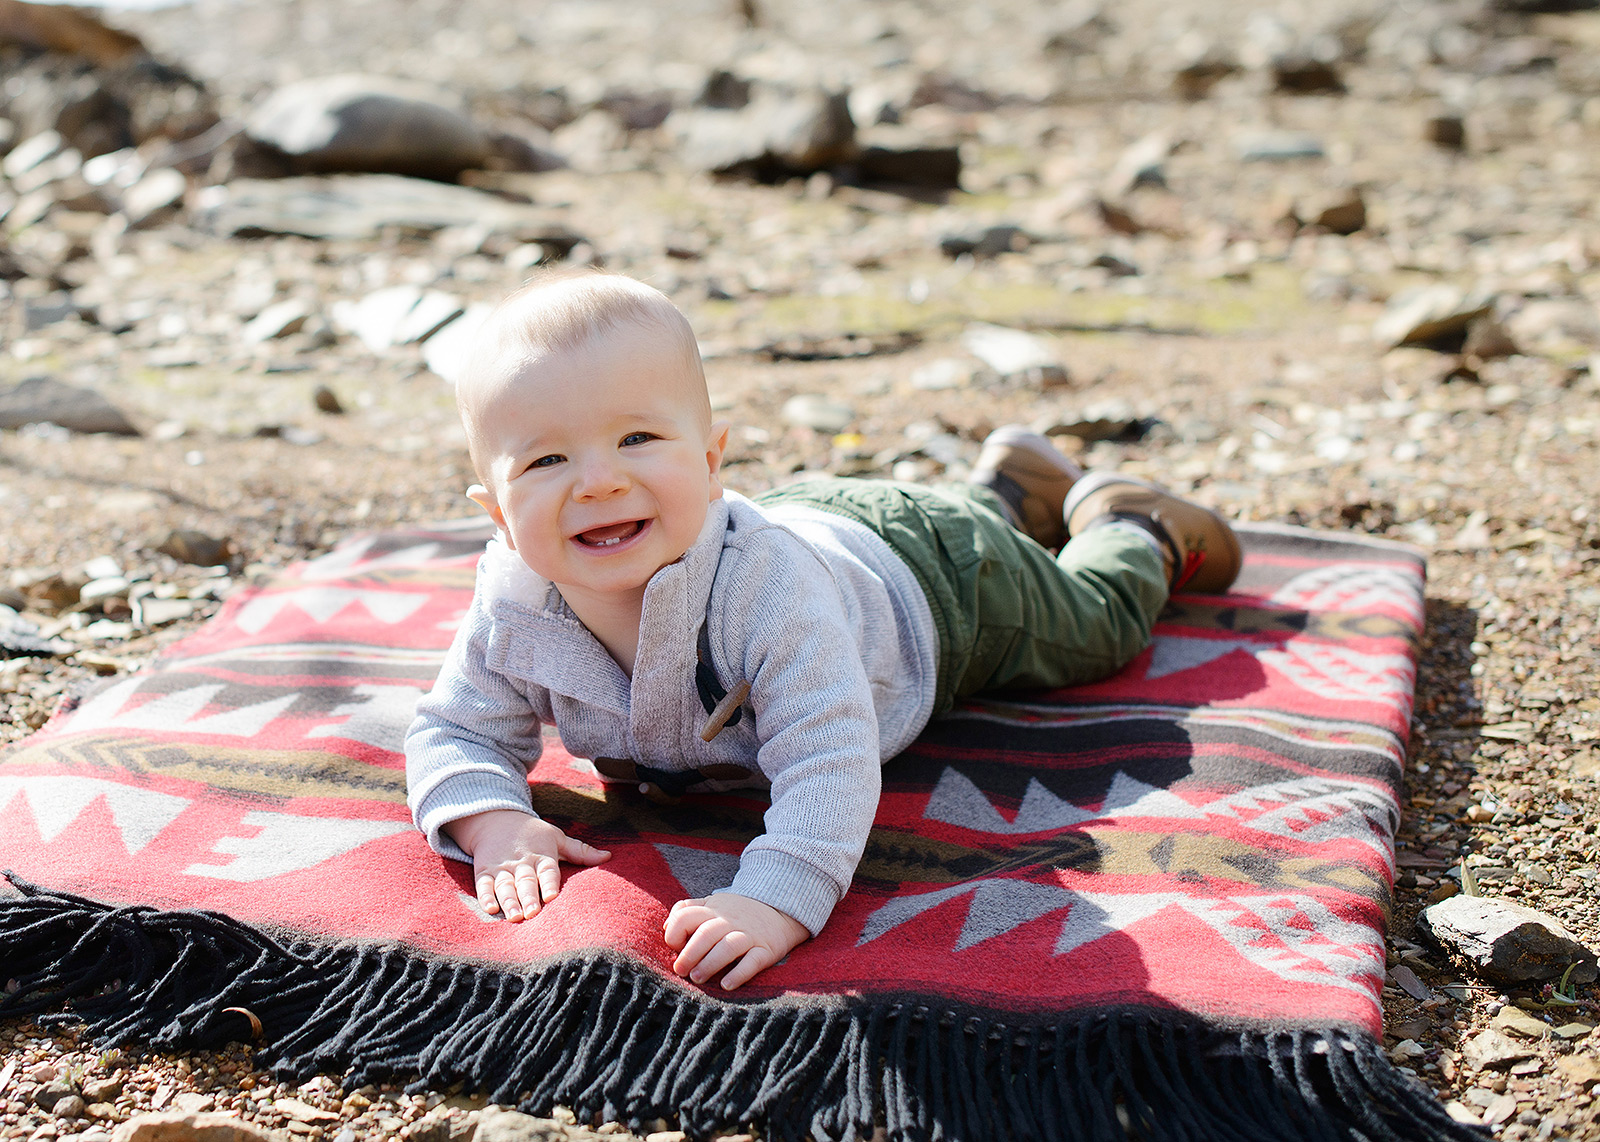 Baby Boy Smiling on Southwest Print Blanket by Pollock Pines Lake